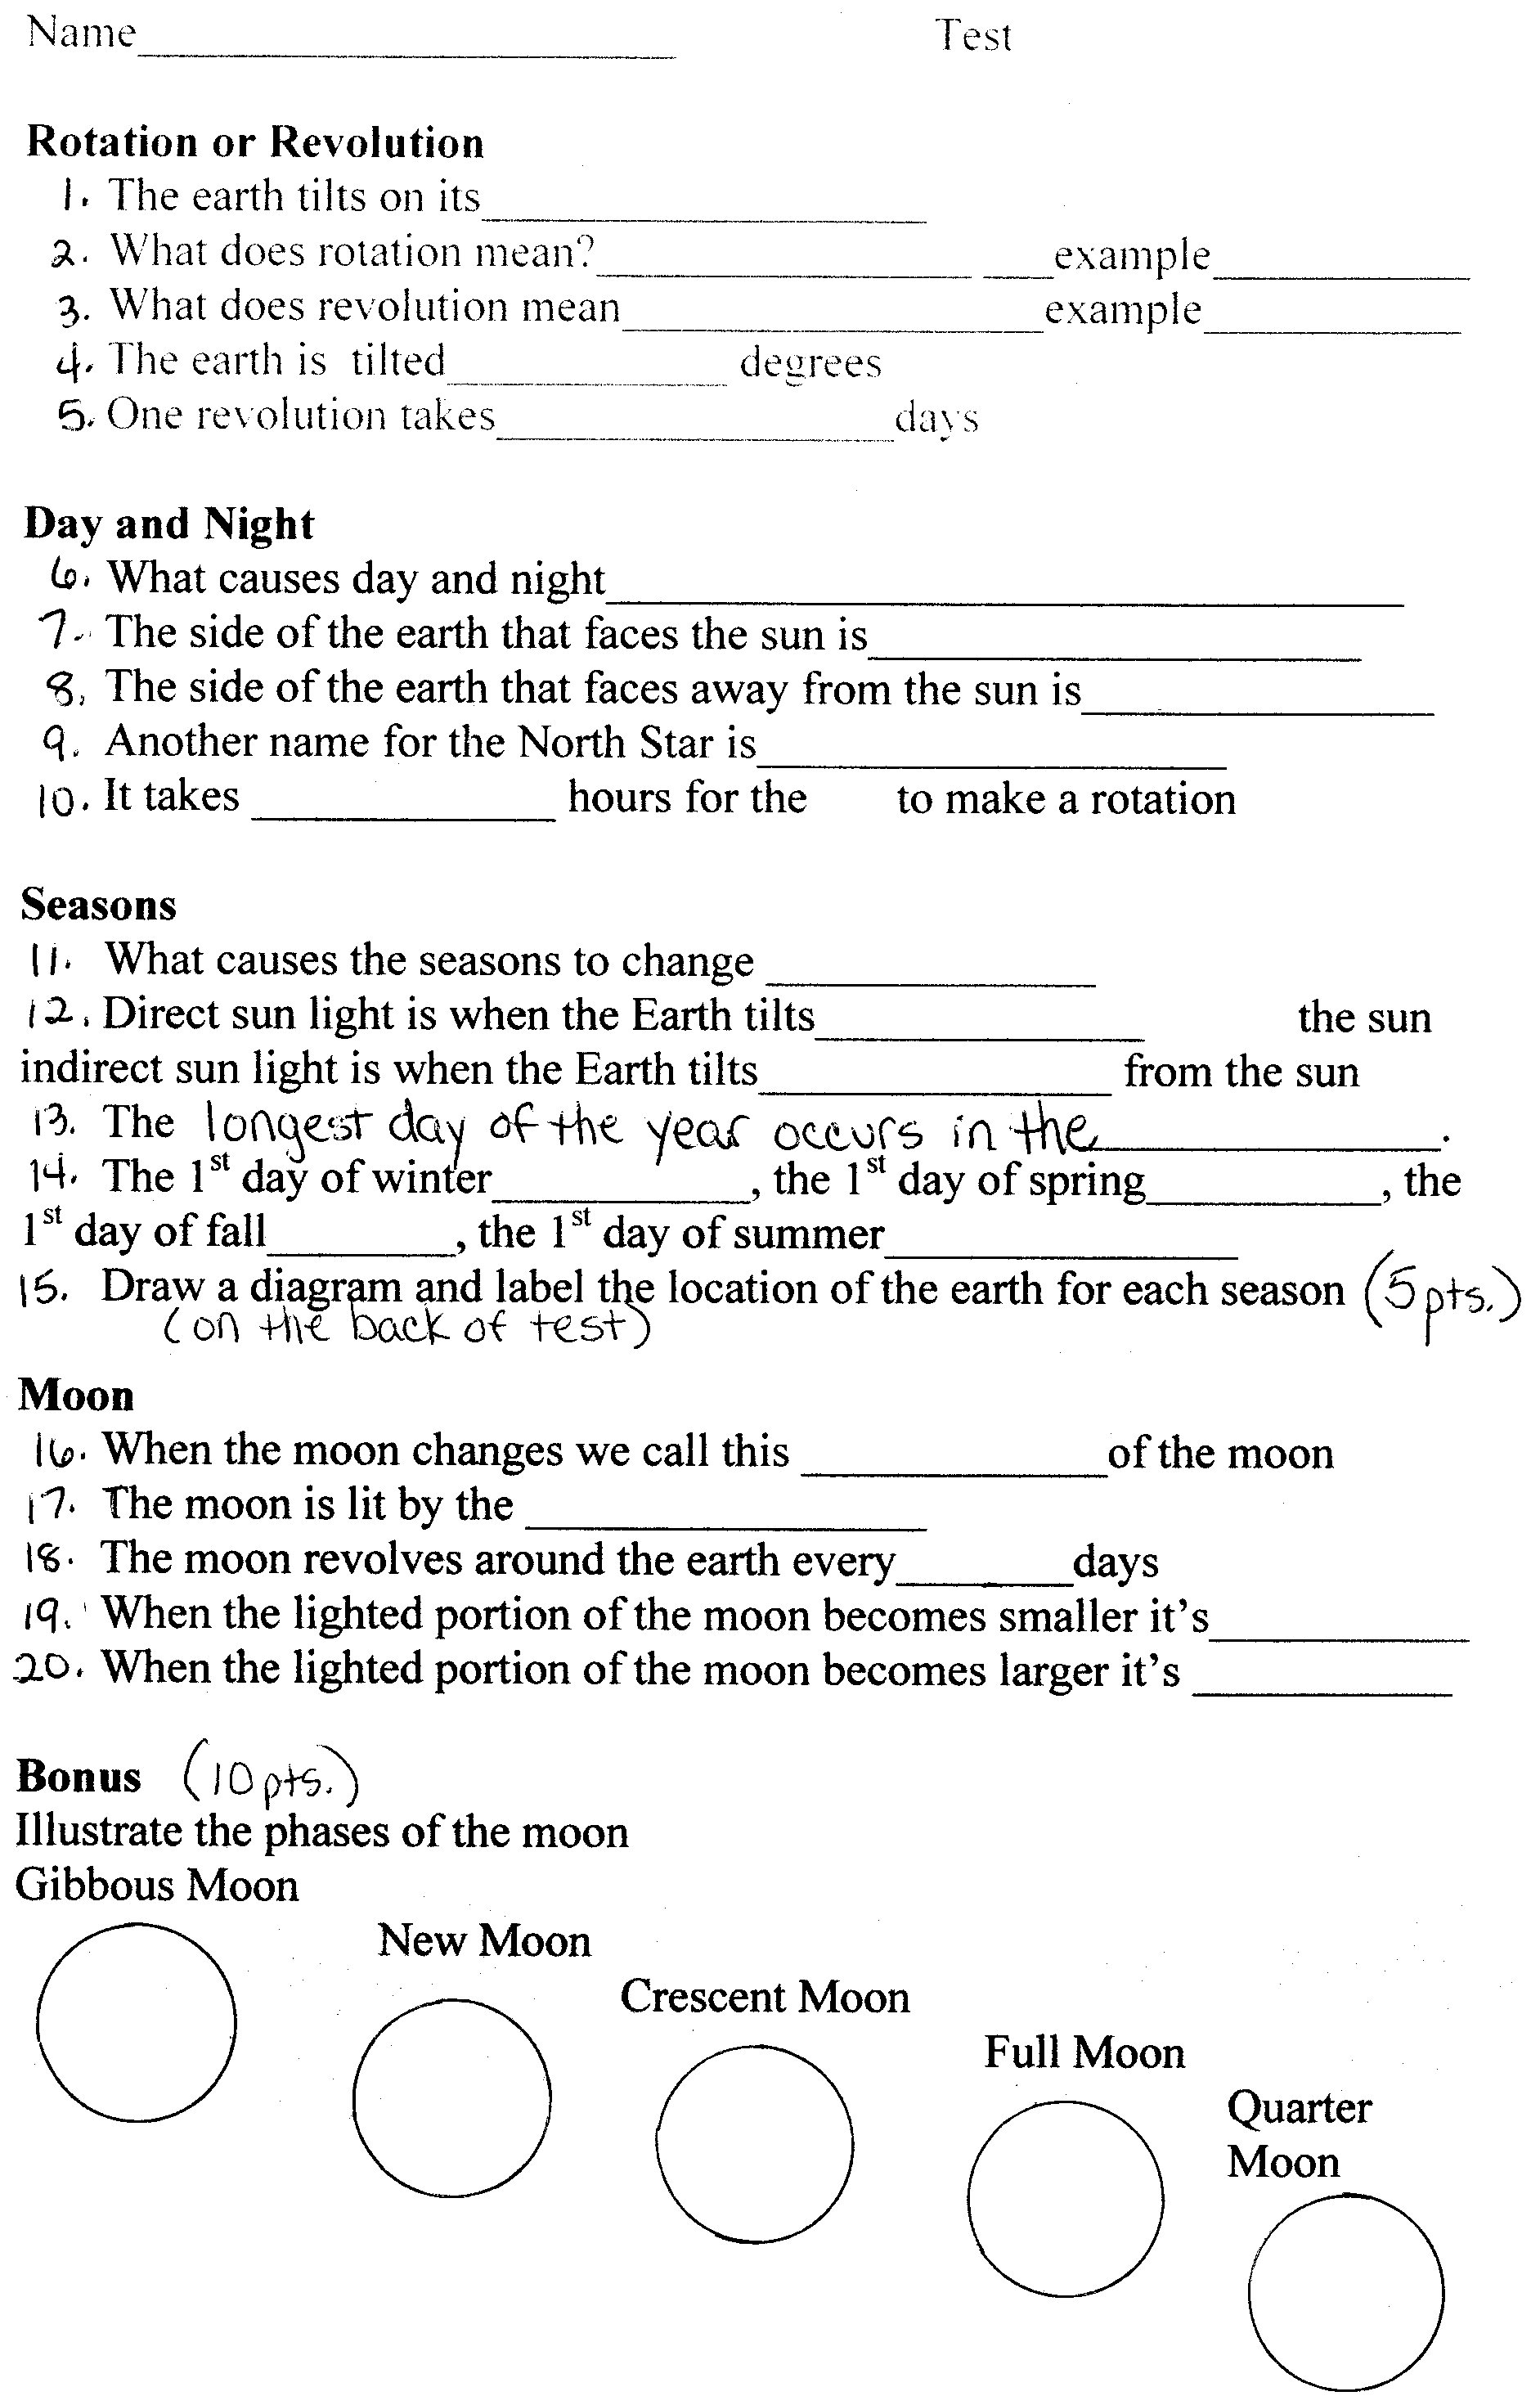 Free Worksheet Latitude And Longitude Worksheets Middle School latitude and longitude worksheet abitlikethis 19 images for kids worksheet